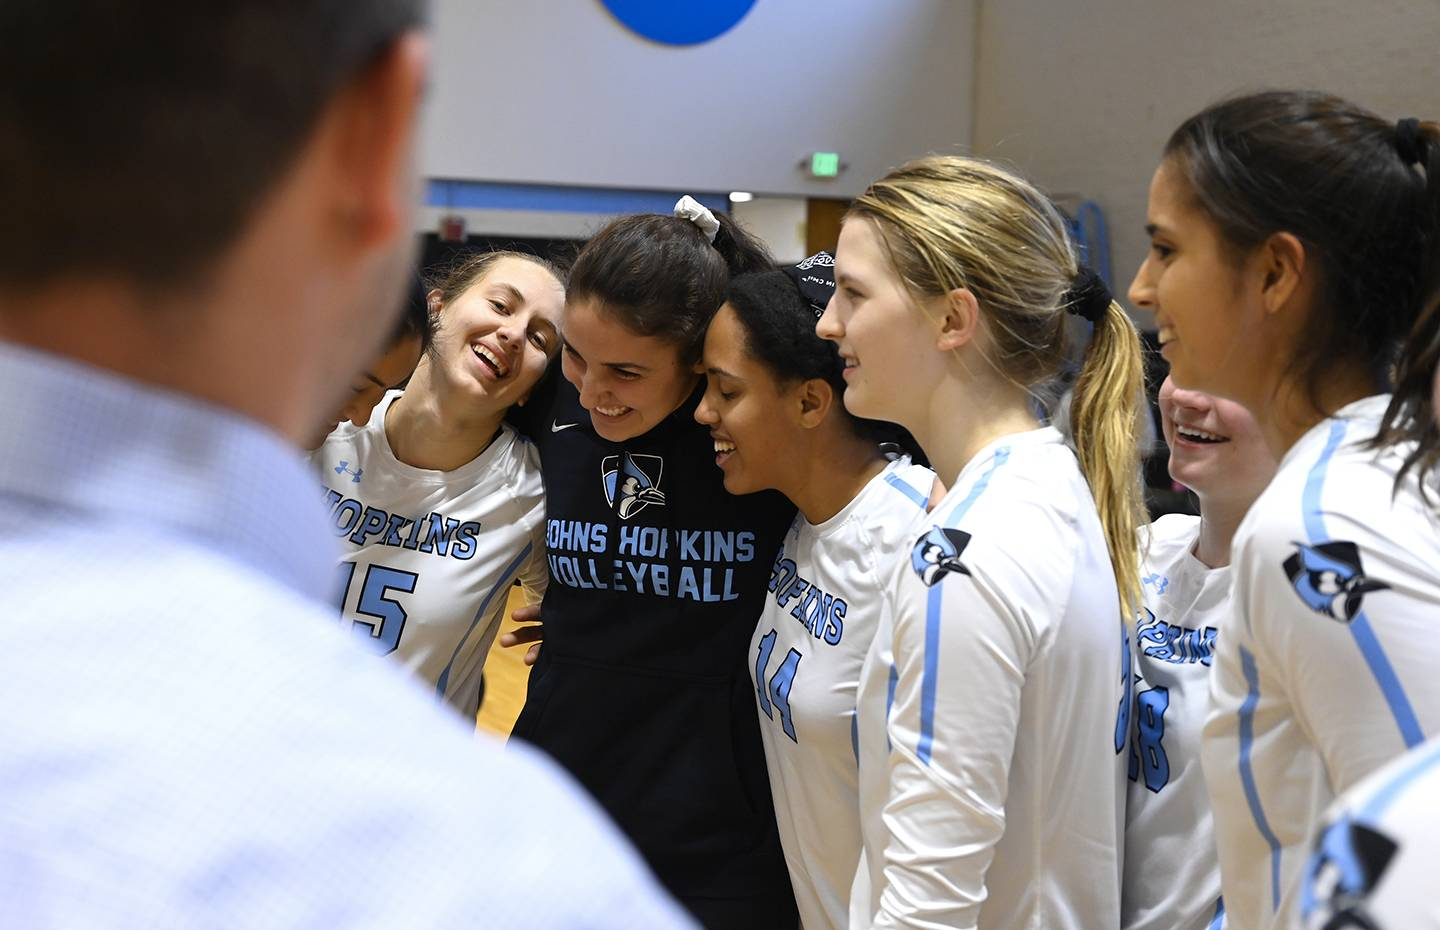 Hopkins volleyball players huddle